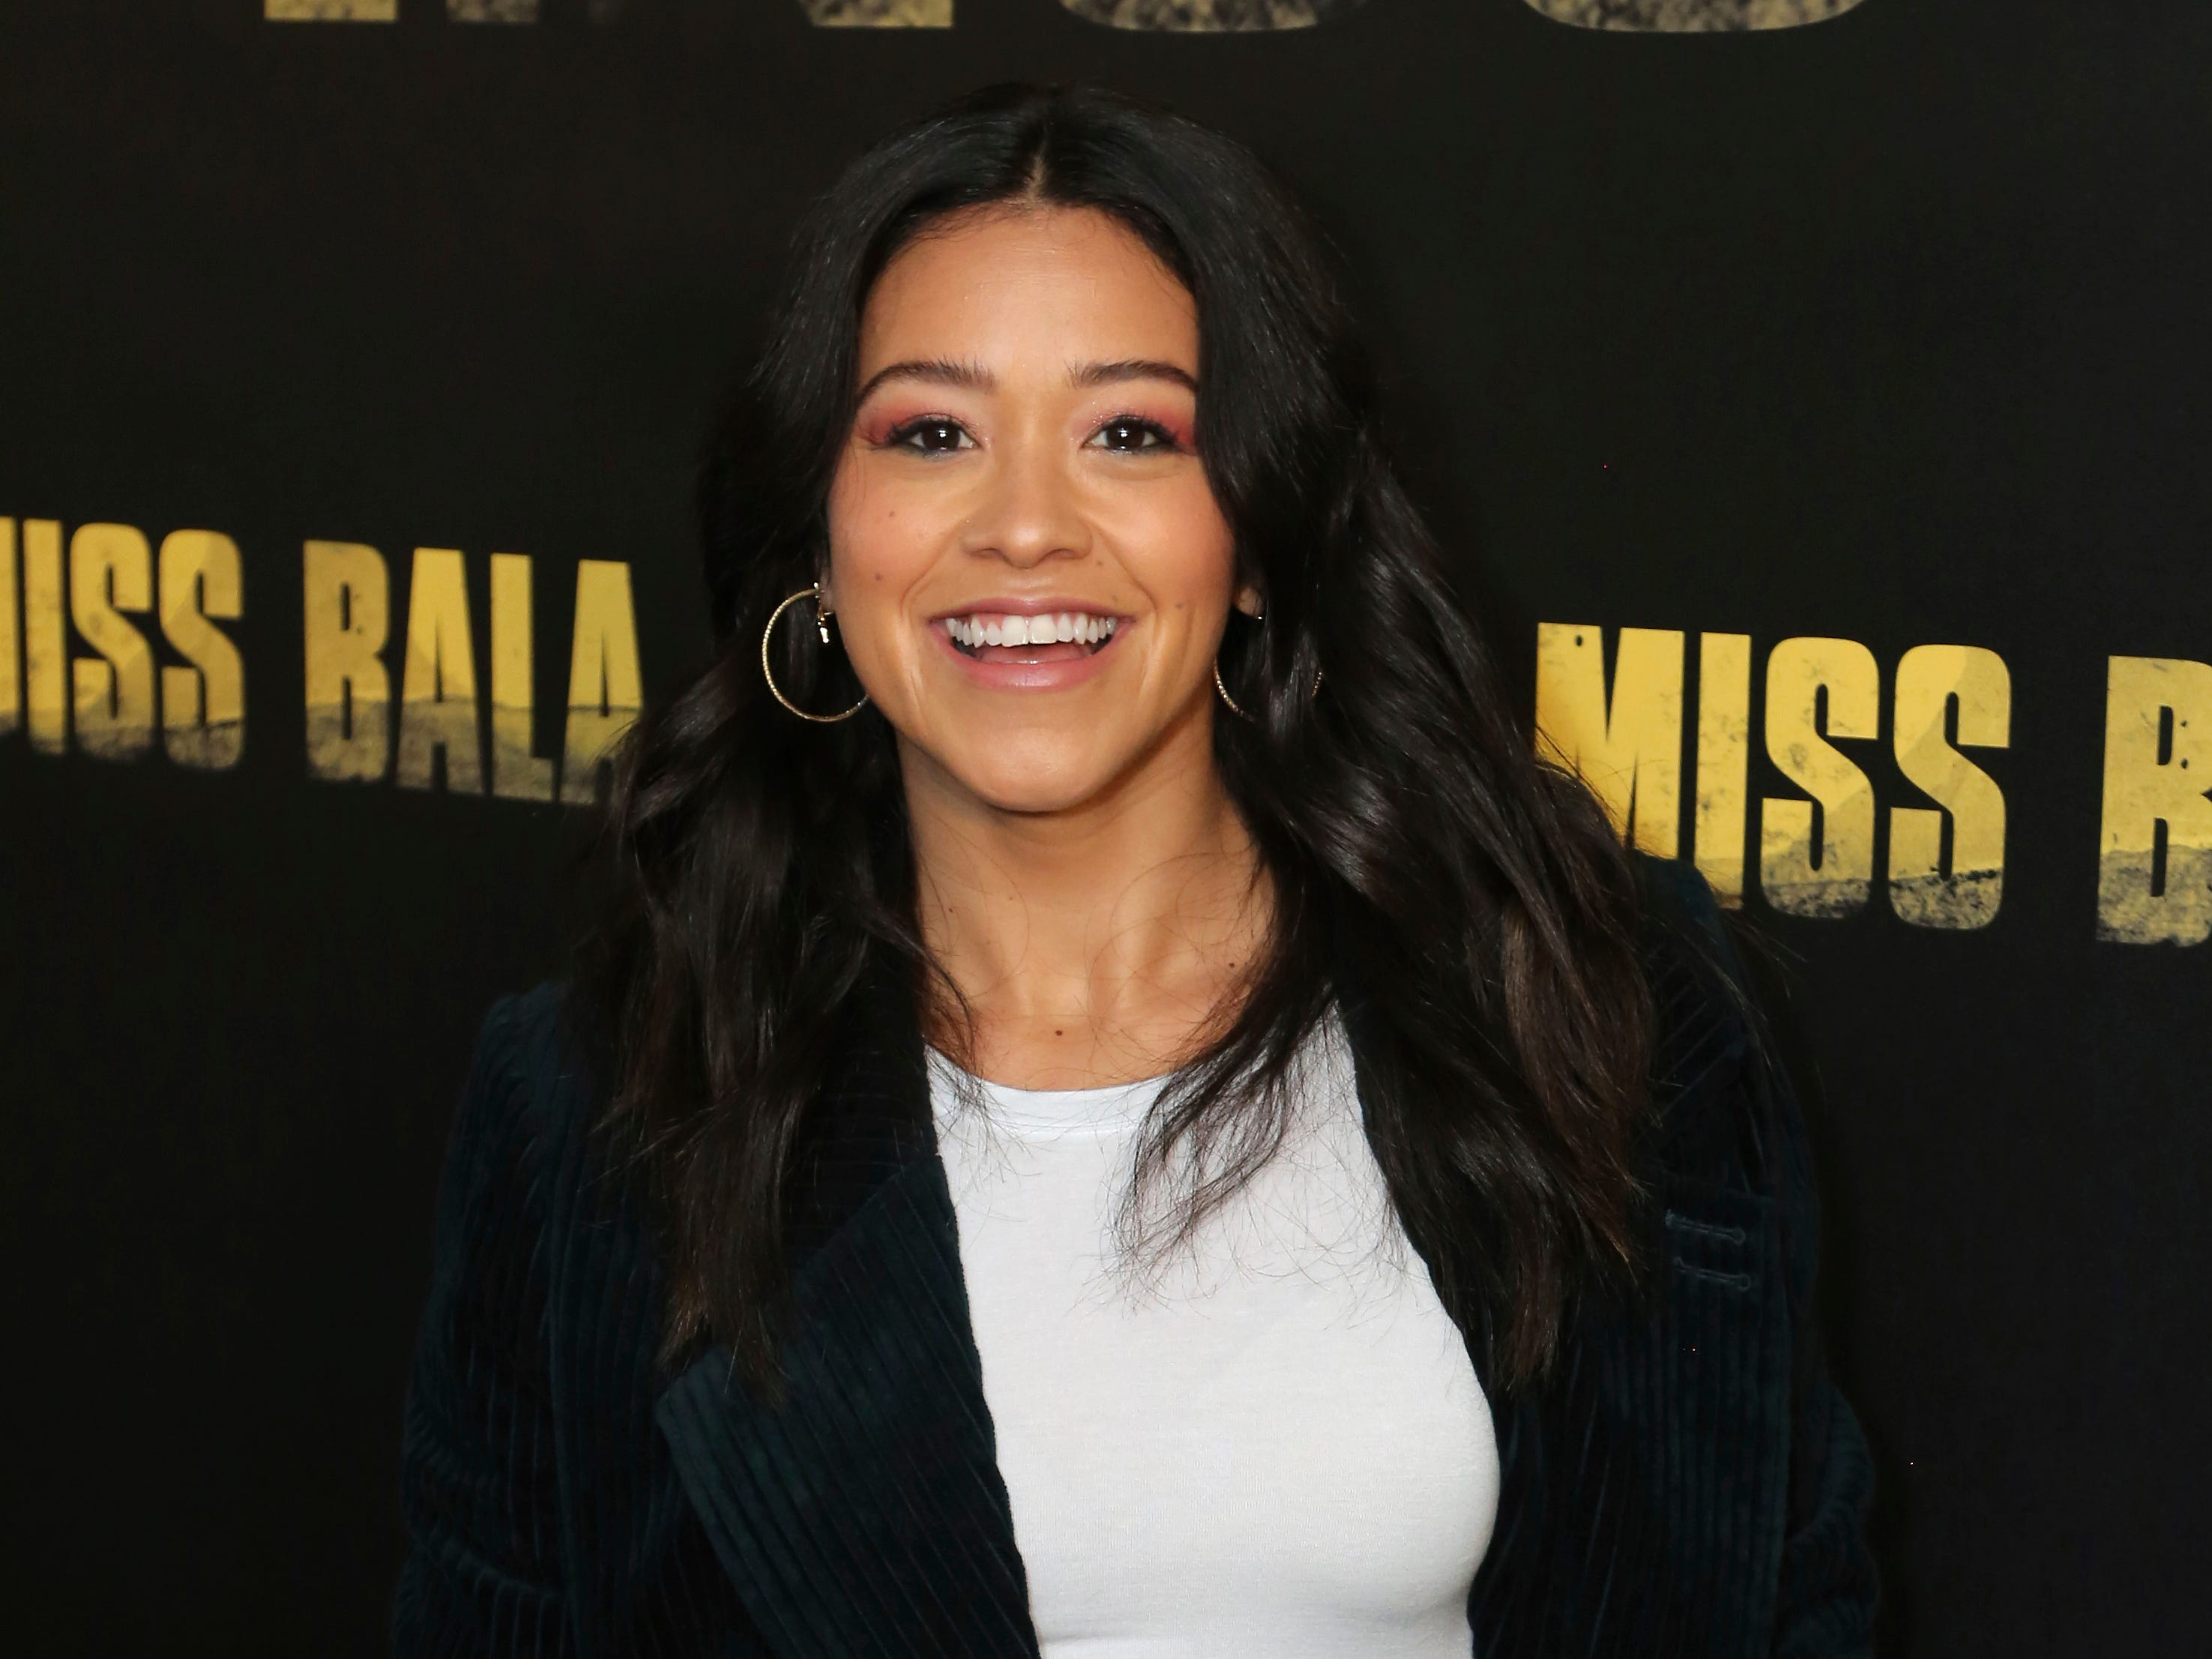 """Gina Rodriguez poses for a photo at the """"Miss Bala"""" Photo Call at The London West Hollywood on Sunday, Jan. 13, 2019, in West Hollywood, Calif."""